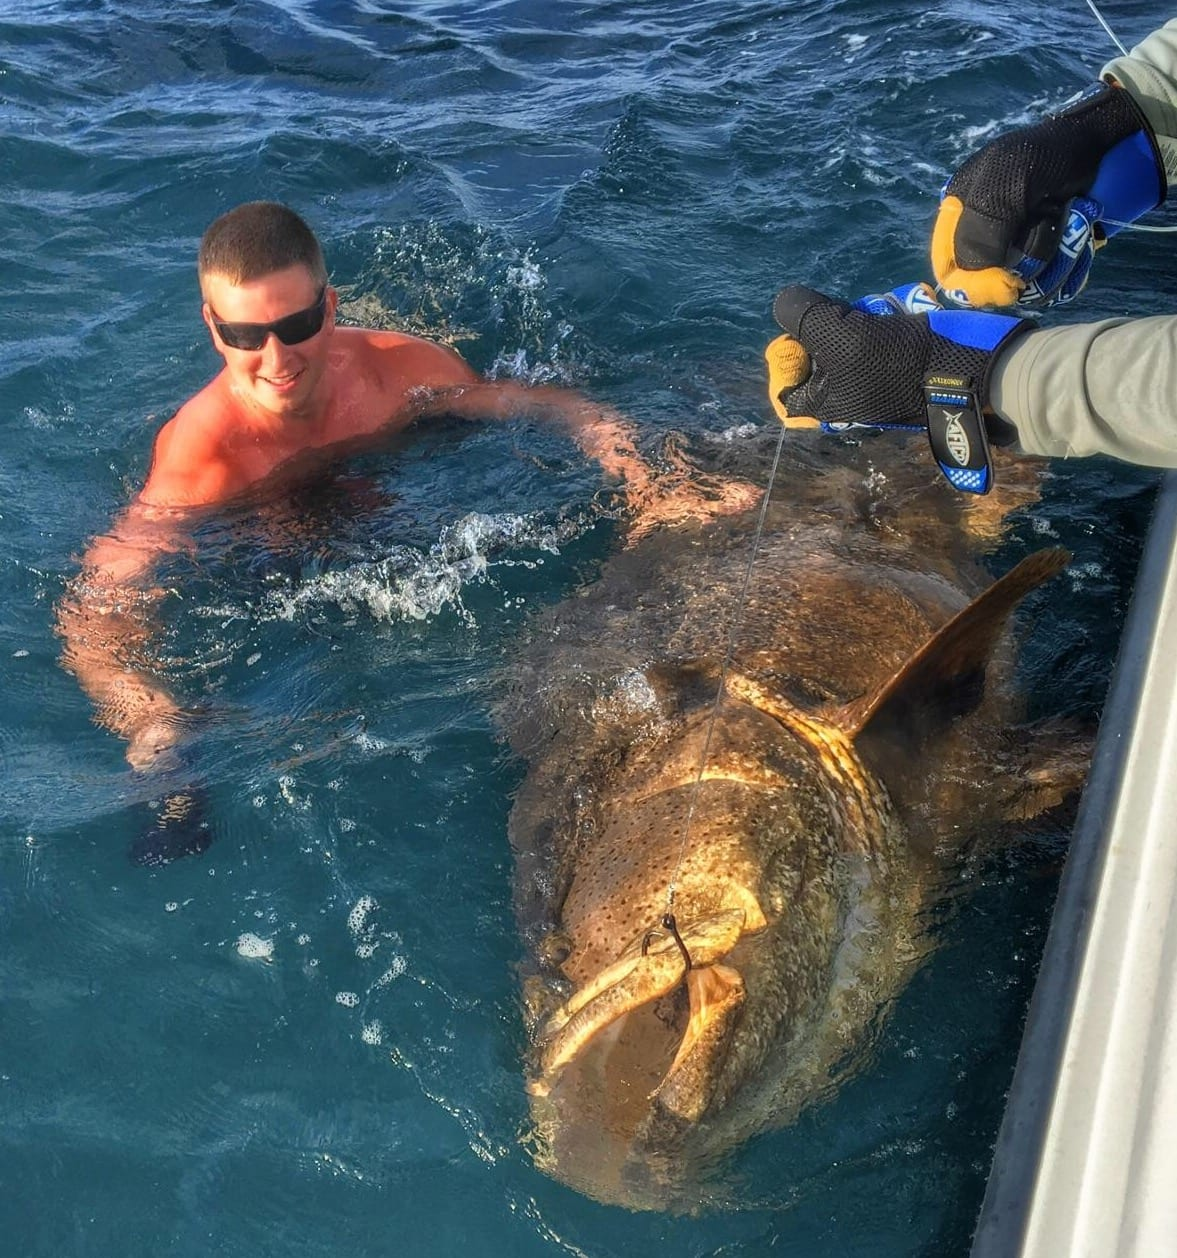 Goliath Grouper Fishing in Clearwater